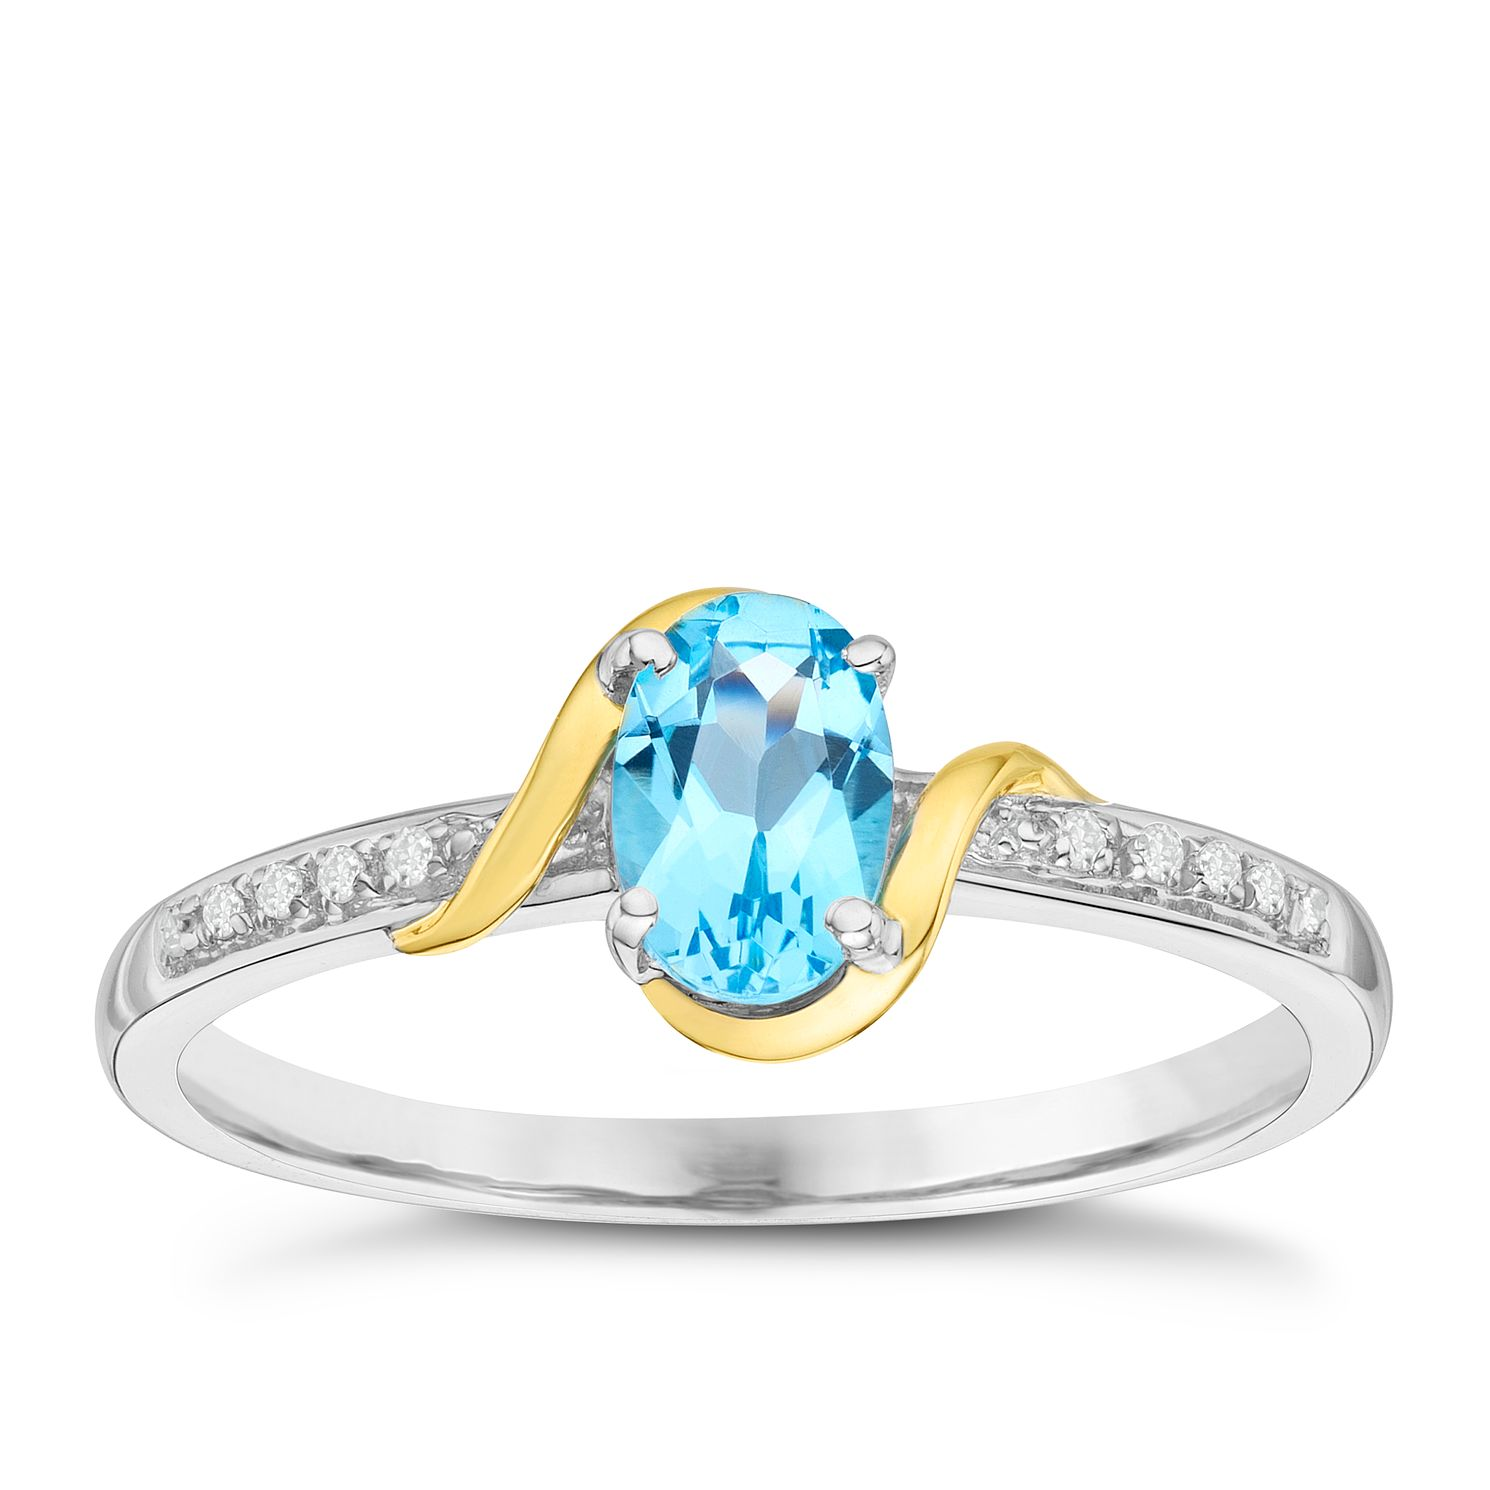 scott lady s silver topaz sterling diamonds london diamond rings kay ring blue with